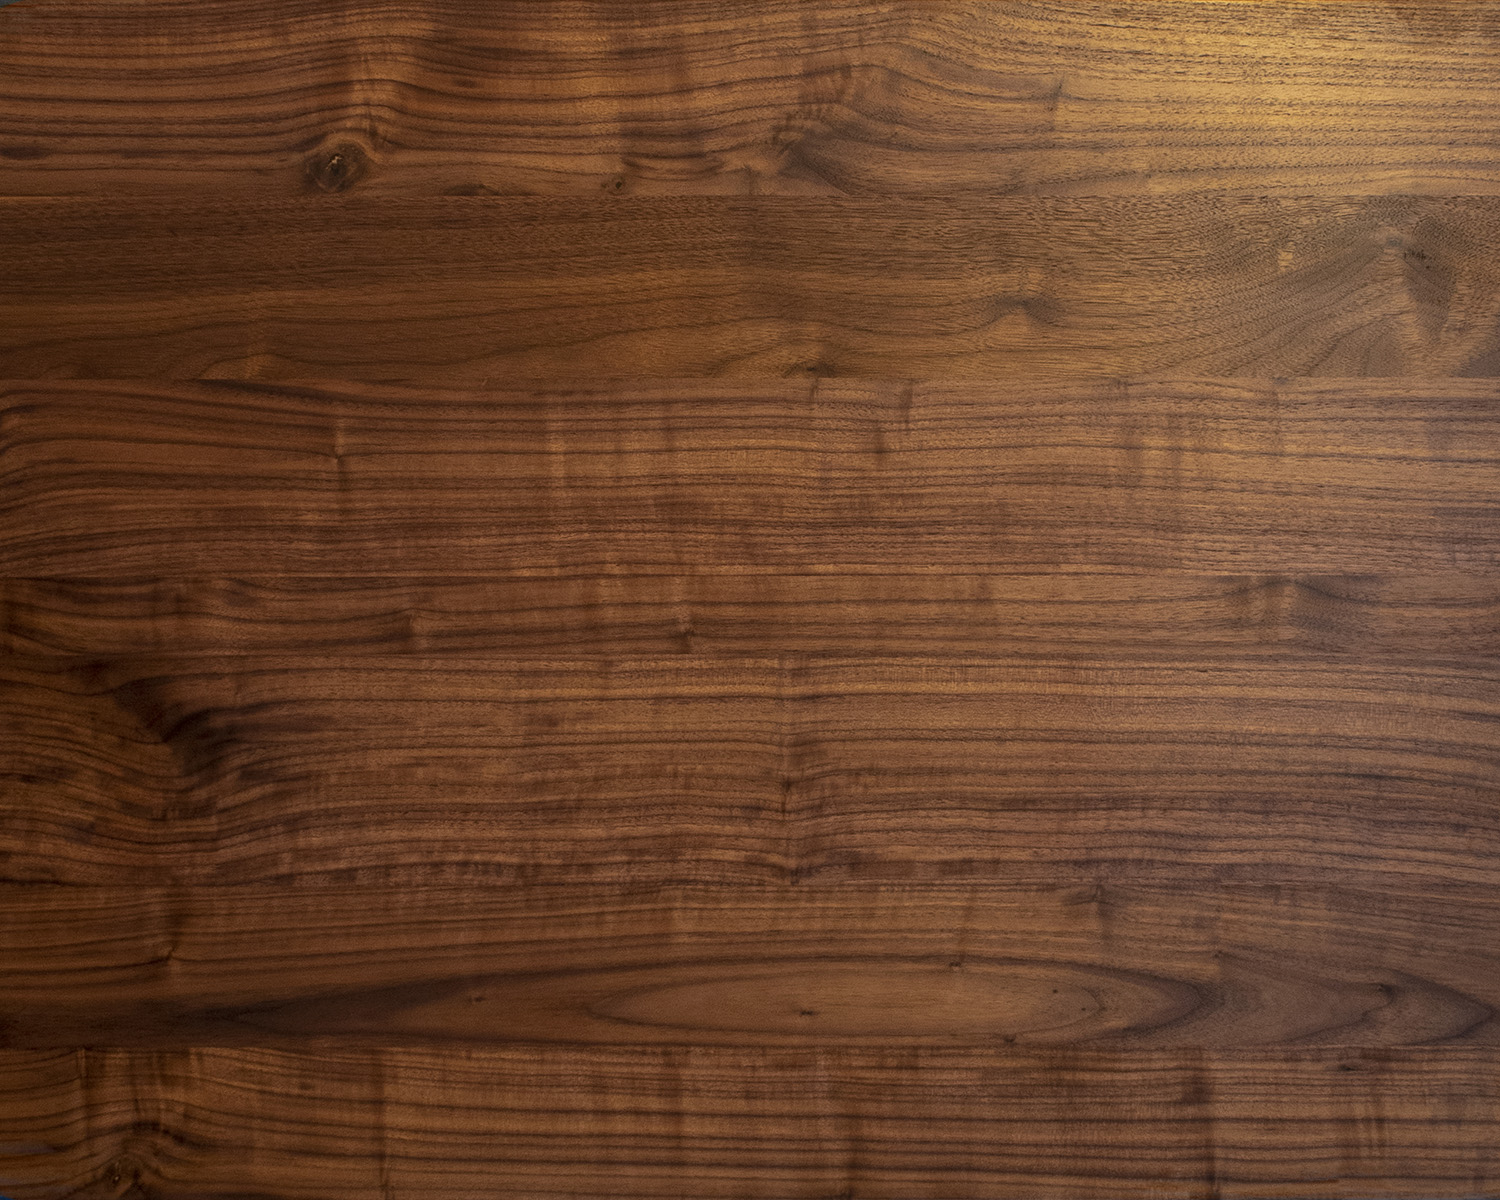 WALNut - The most beautiful wood on earth?